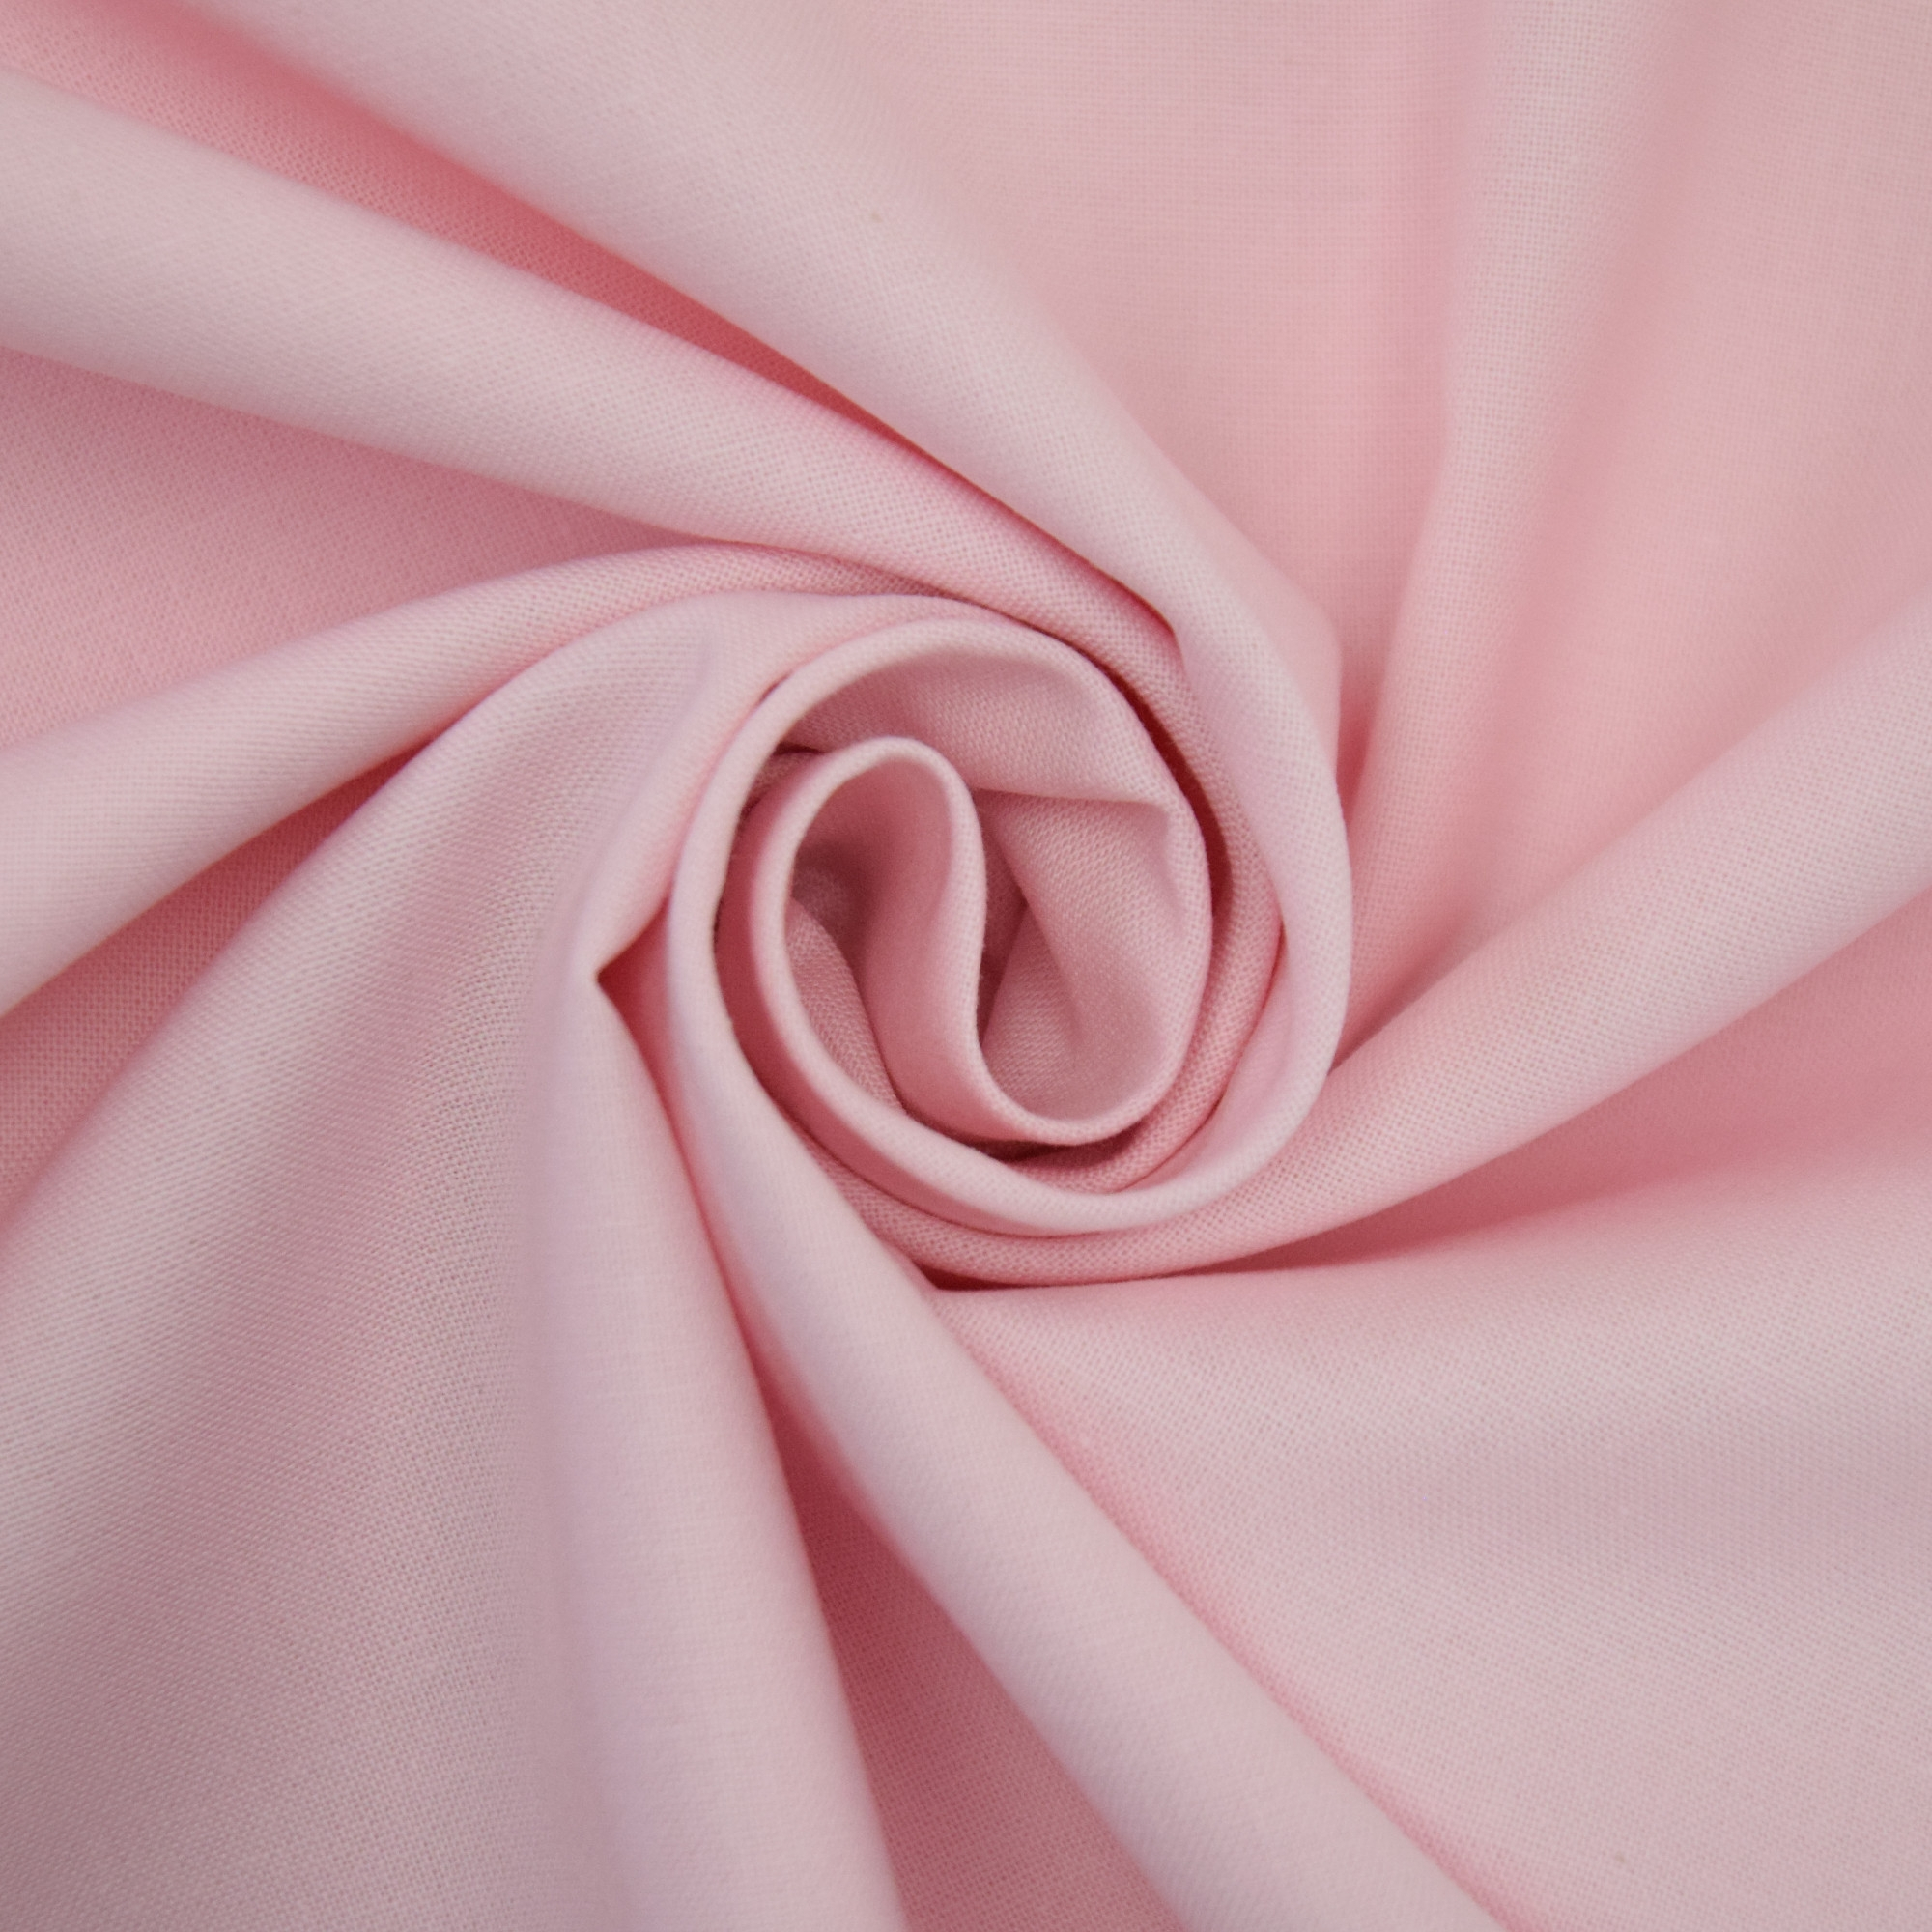 Cotton Cretonne pink | 100.018-1017 | rosa